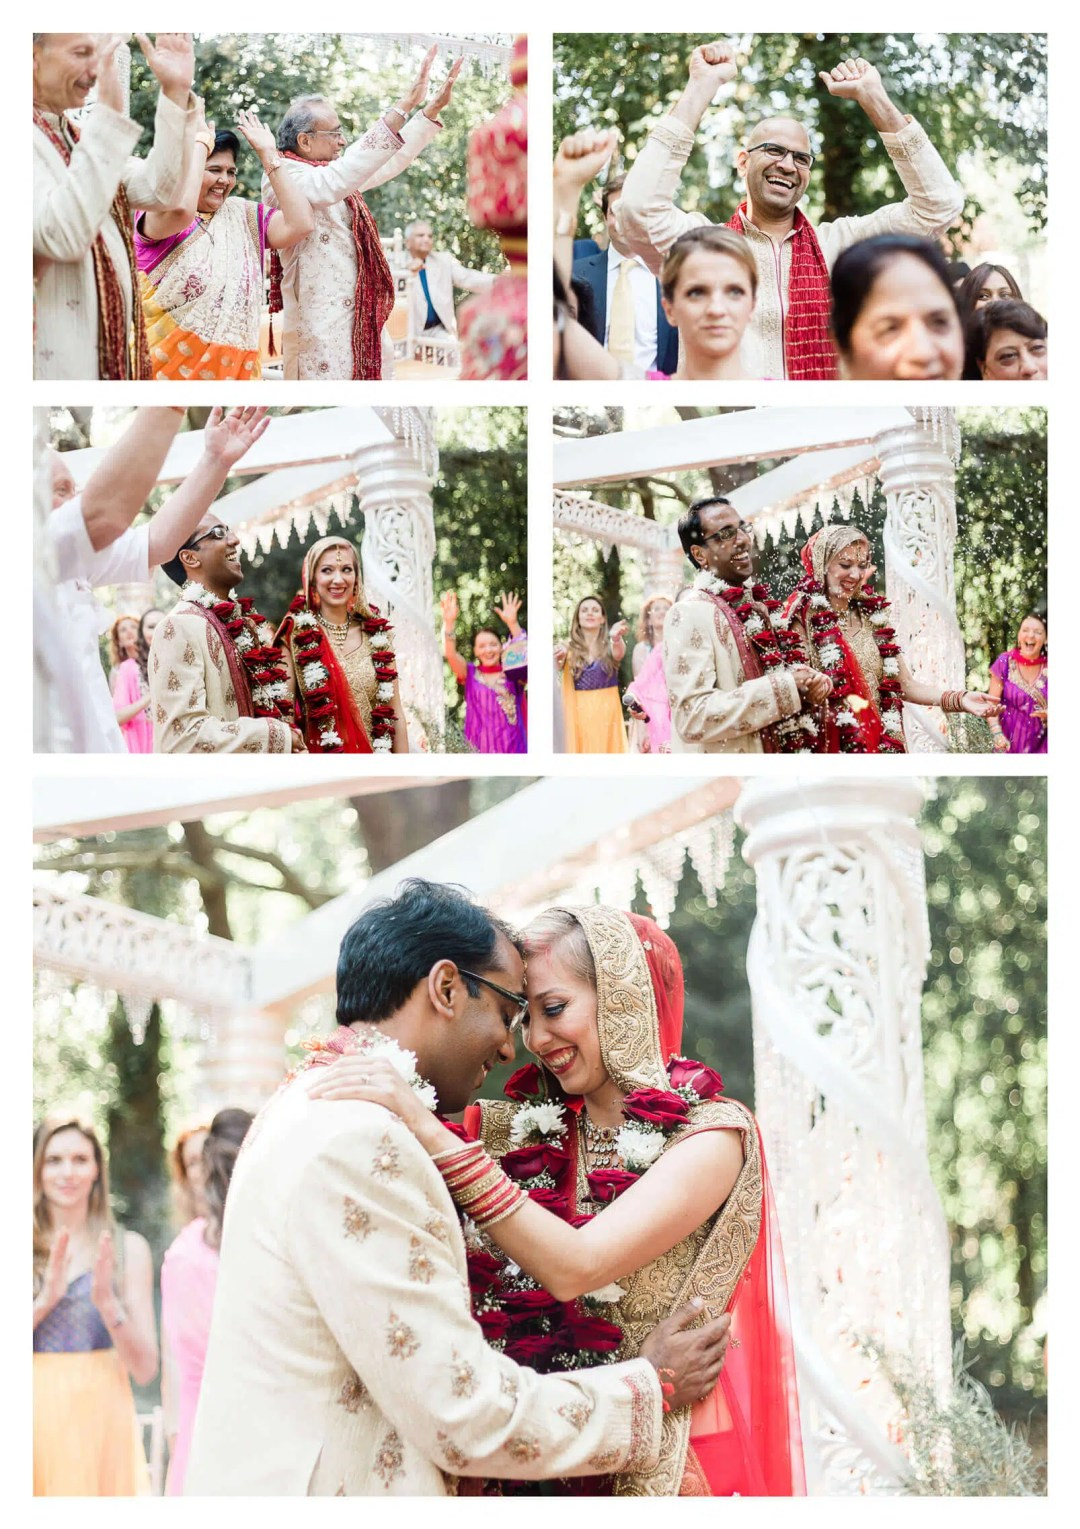 Baddow Park Hindu multicultural wedding ceremony | Essex photographer